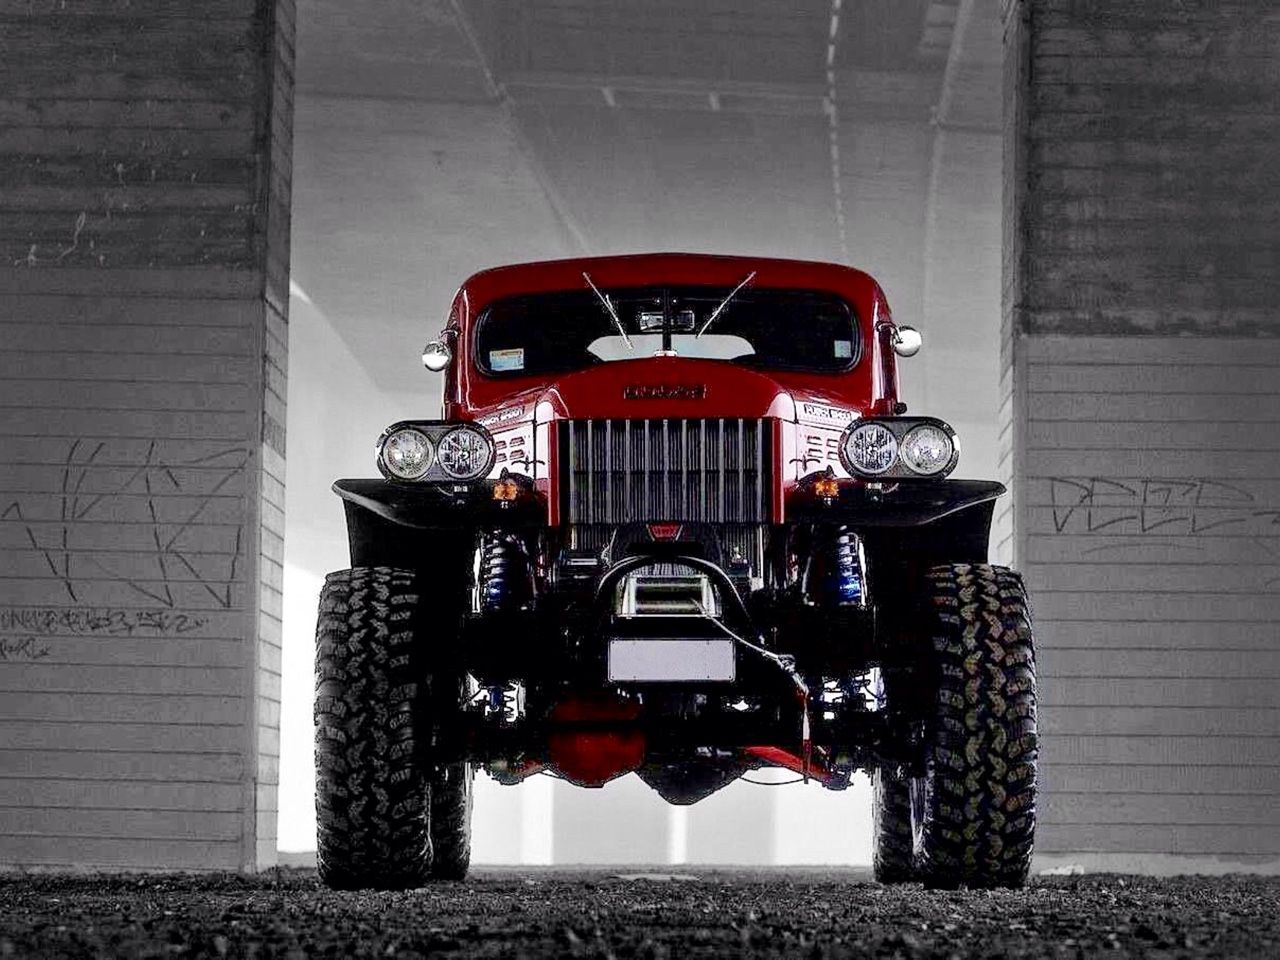 1950 Dodge Power Wagon Maintenance of old vehicles  the material for new  cogs casters gears could be cast polyamide which I  Cast polyamide  can  produce. 39 best 4x4 images on Pinterest   Car  4x4 trucks and Cars motorcycles